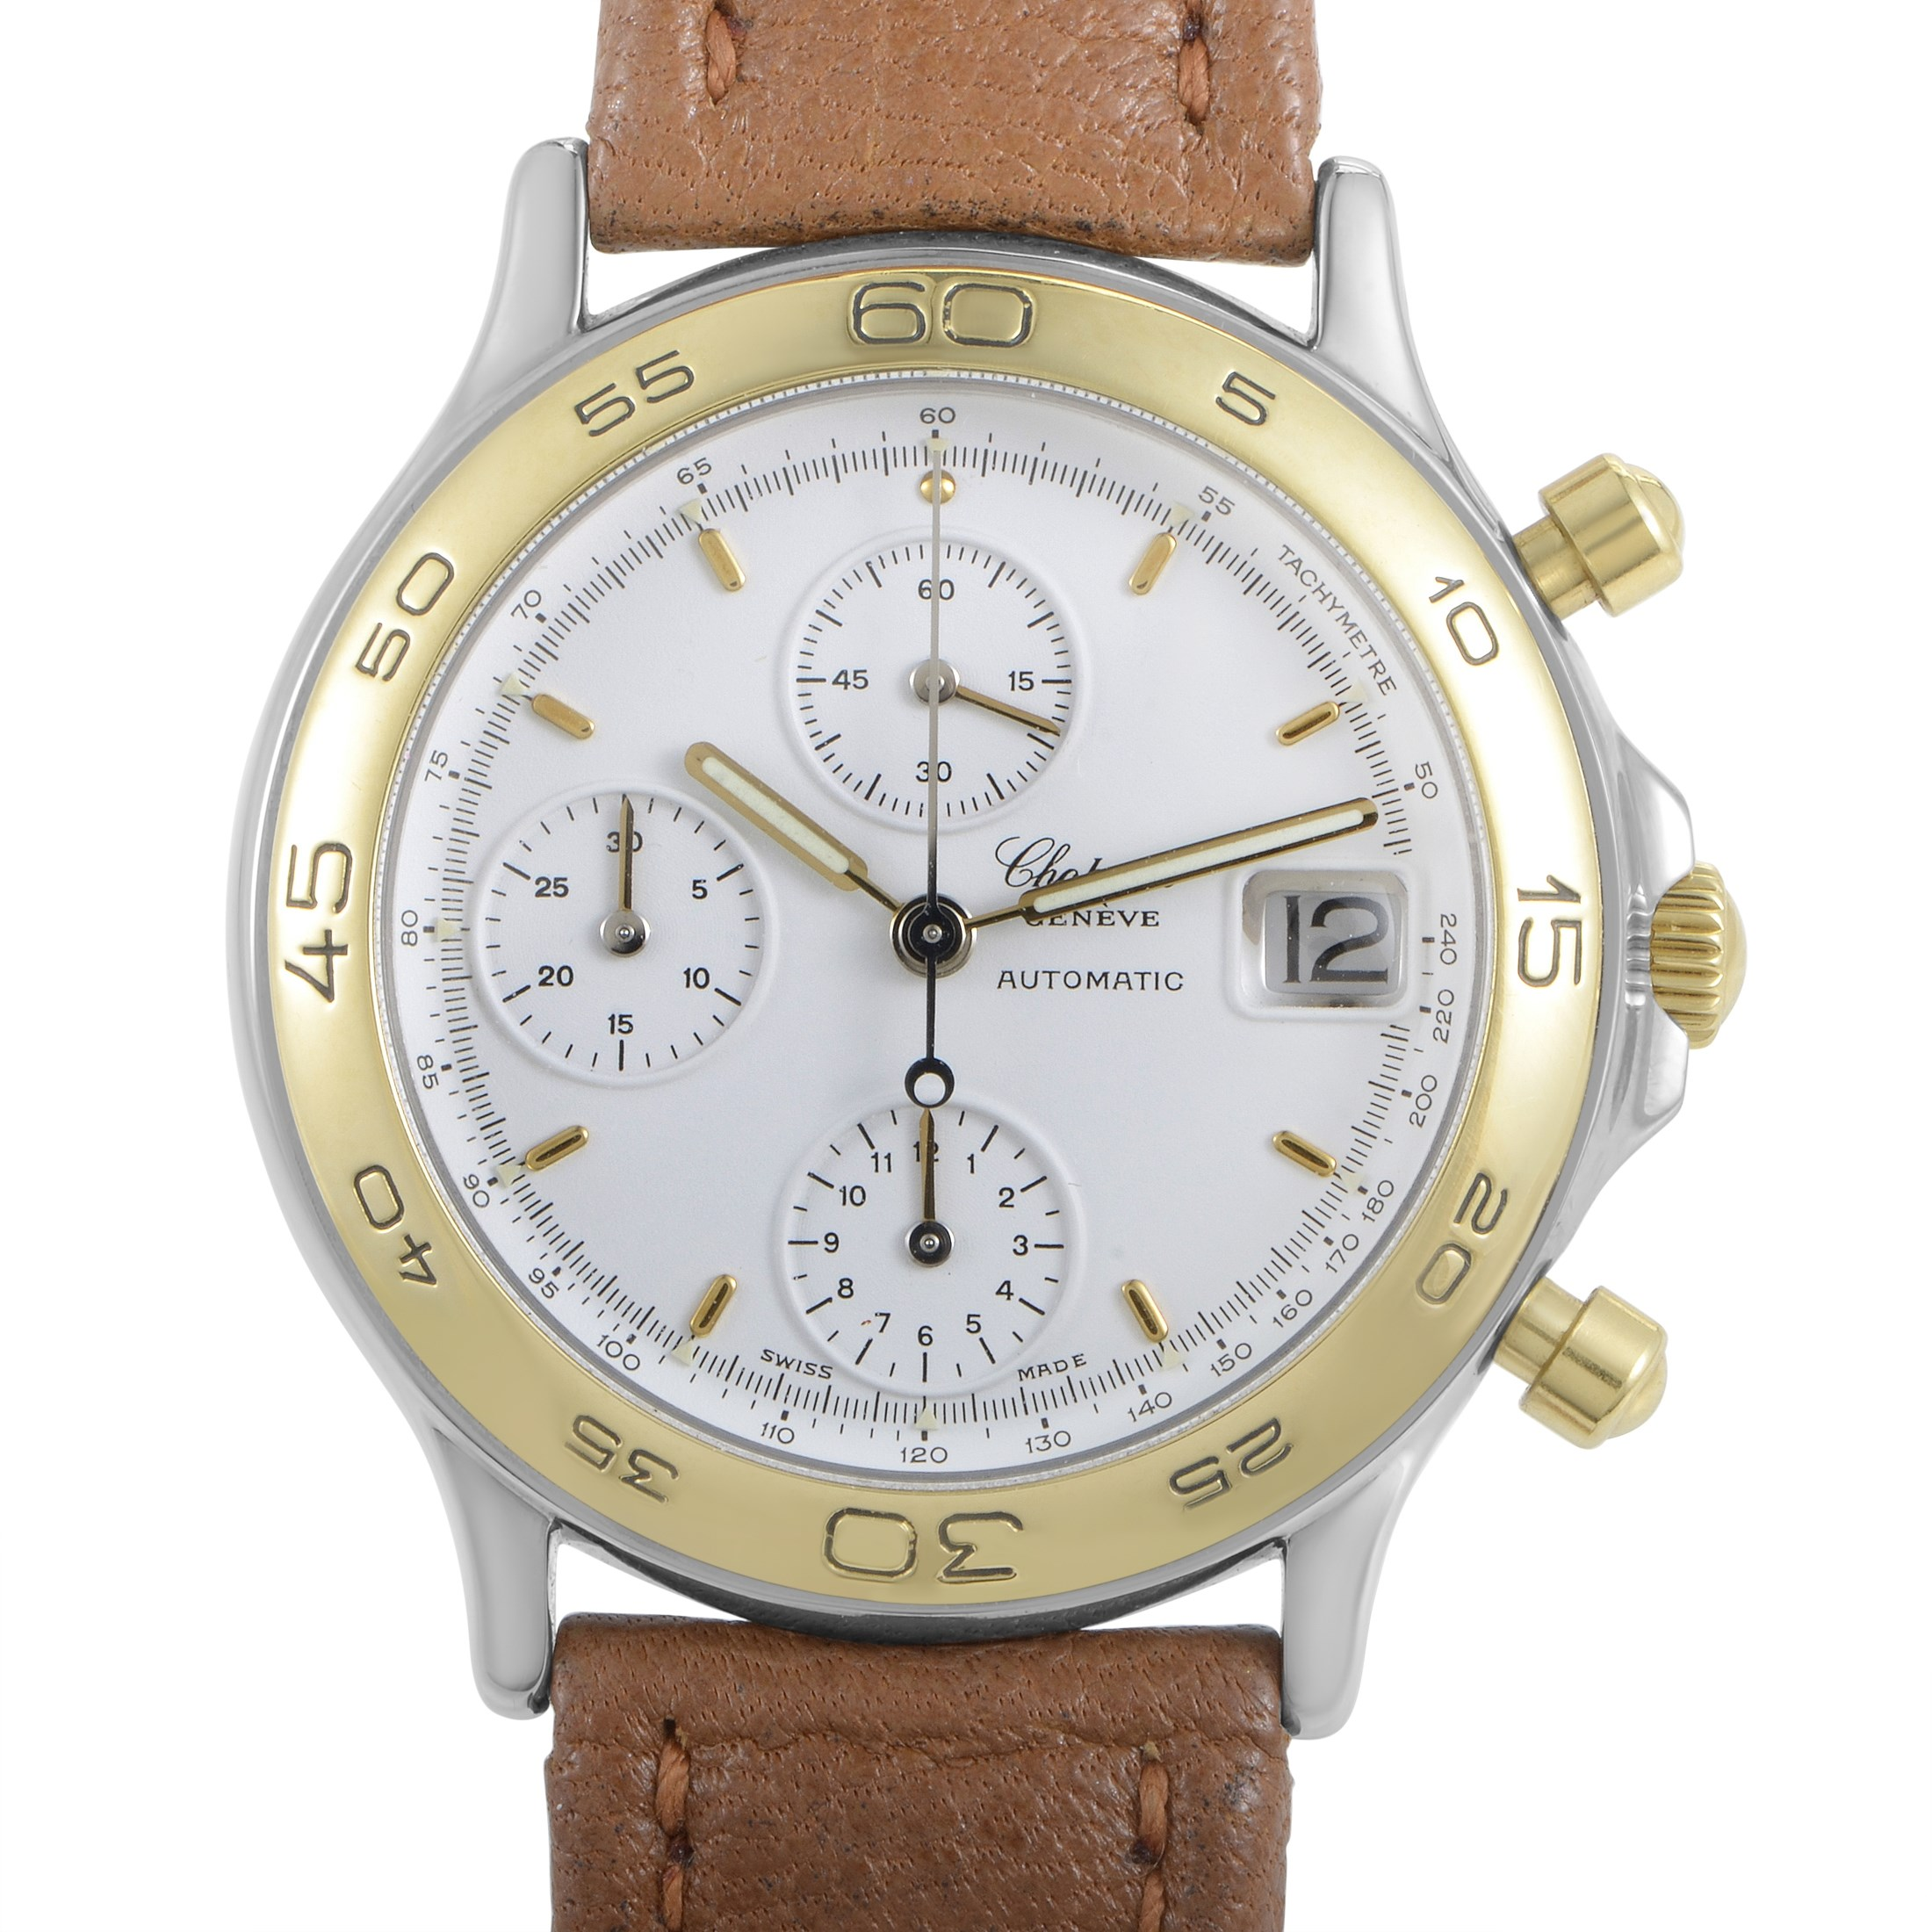 Chopard Mens Automatic Gold Plated Stainless Steel Chronograph Watch 348168-4001